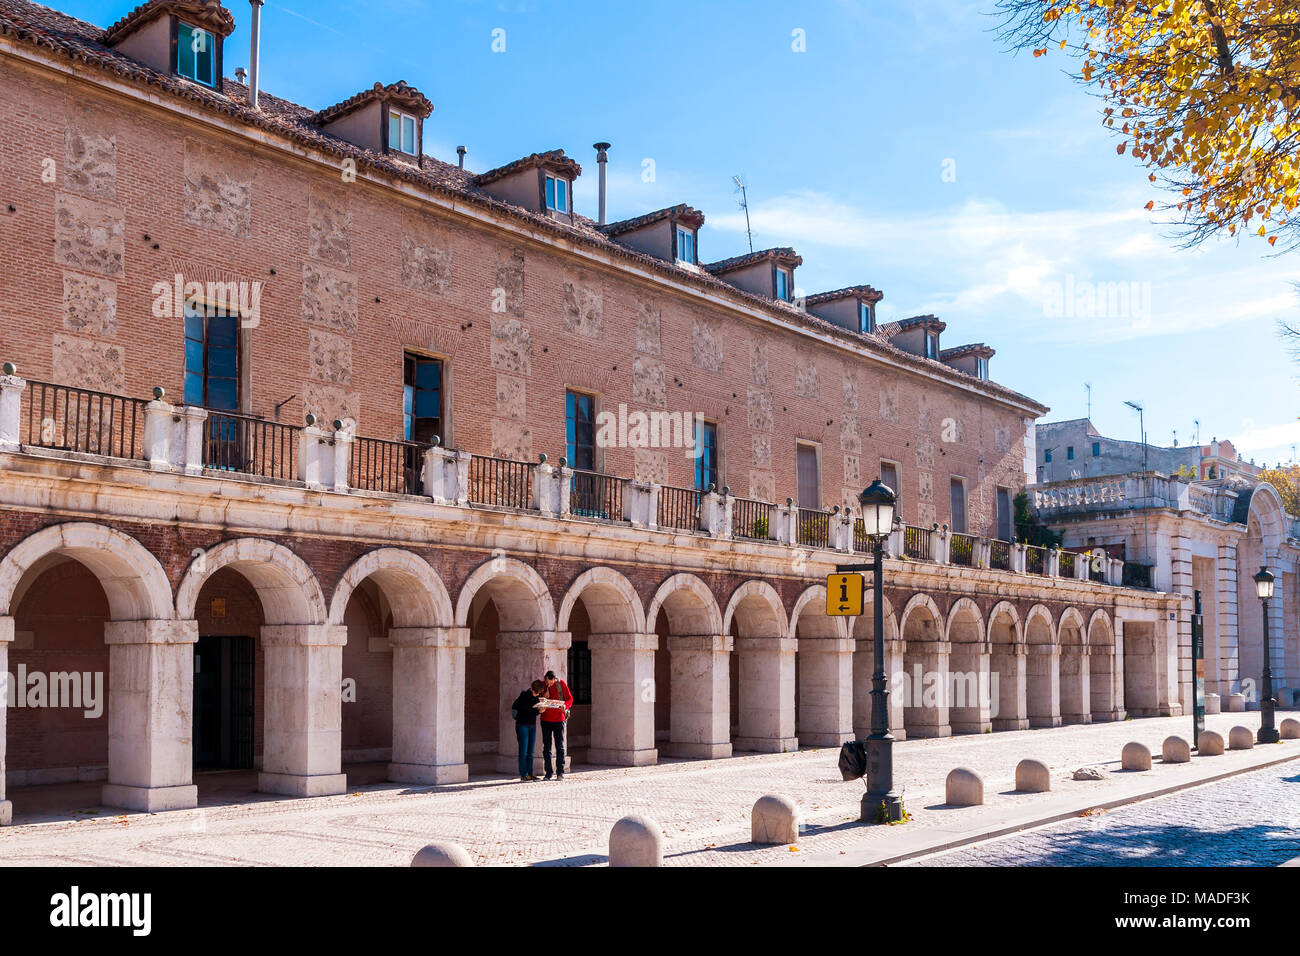 Oficina stock photos oficina stock images alamy for Oficina de turismo barcelona